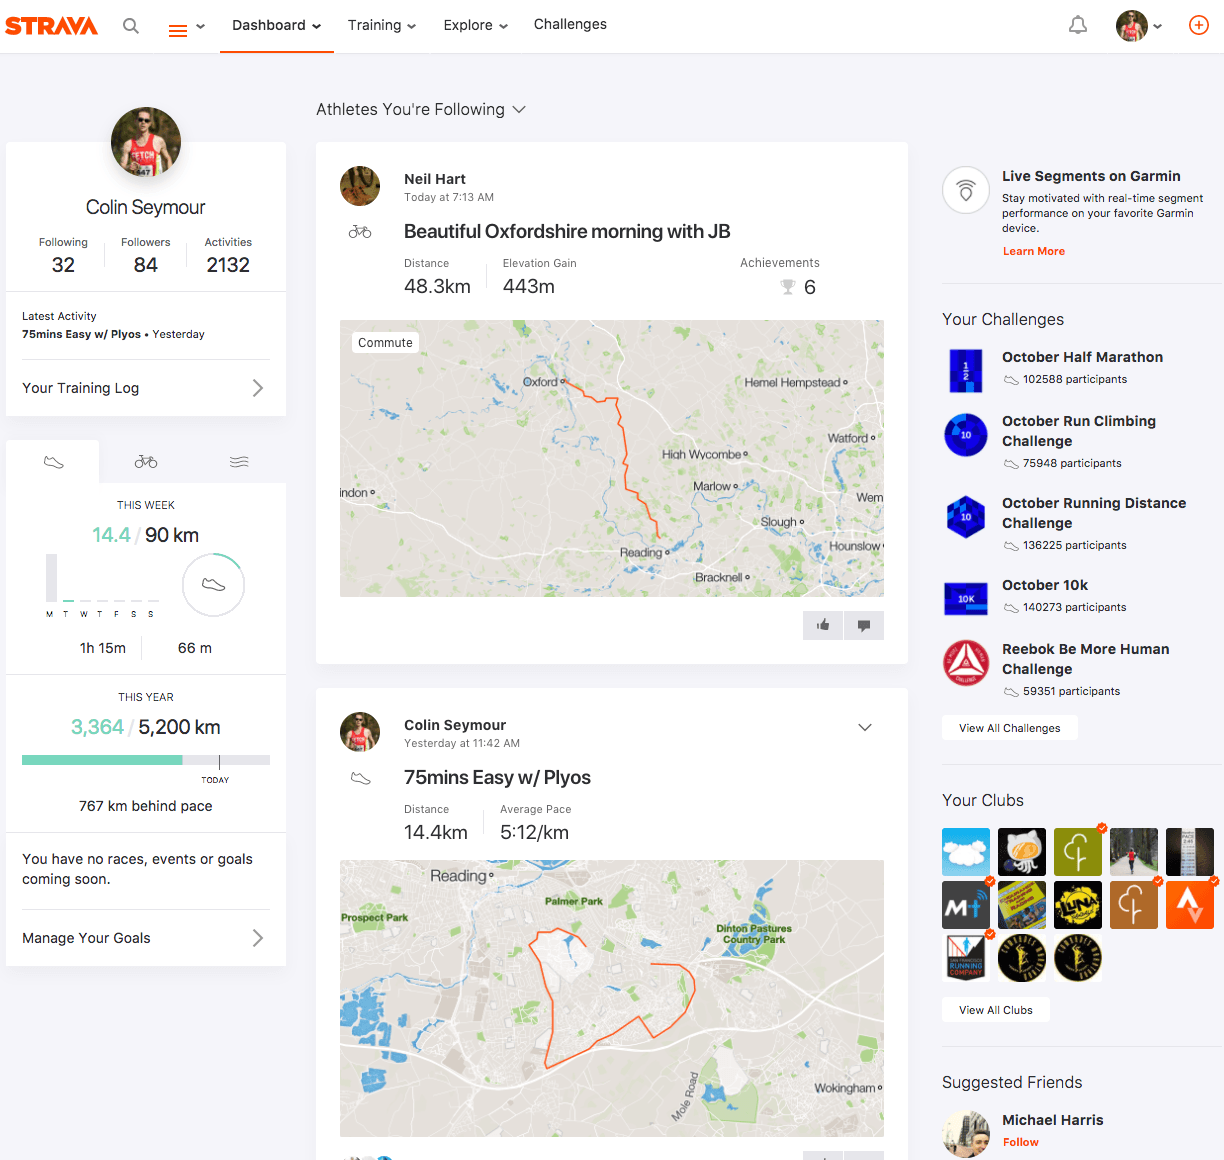 Strava Activity Feed - 17 Oct 2017